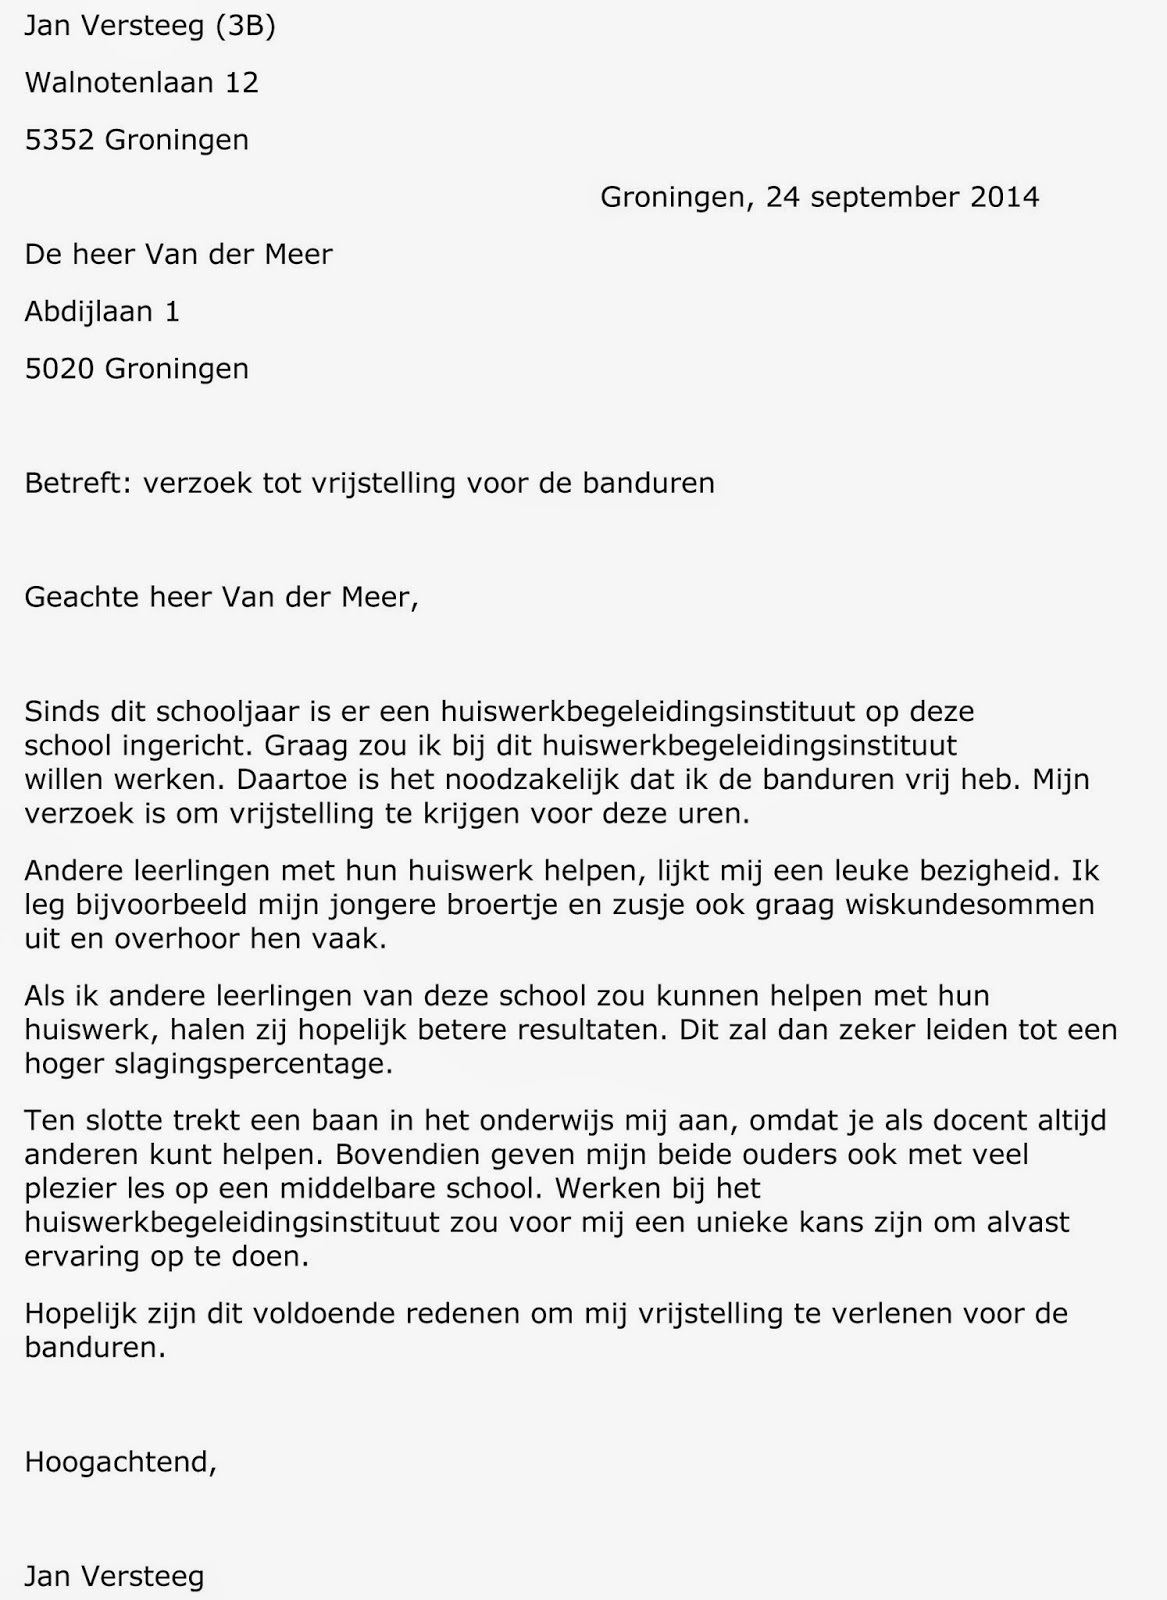 afsluiting brief nederlands Afsluiting Formele Brief Nederlands | gantinova